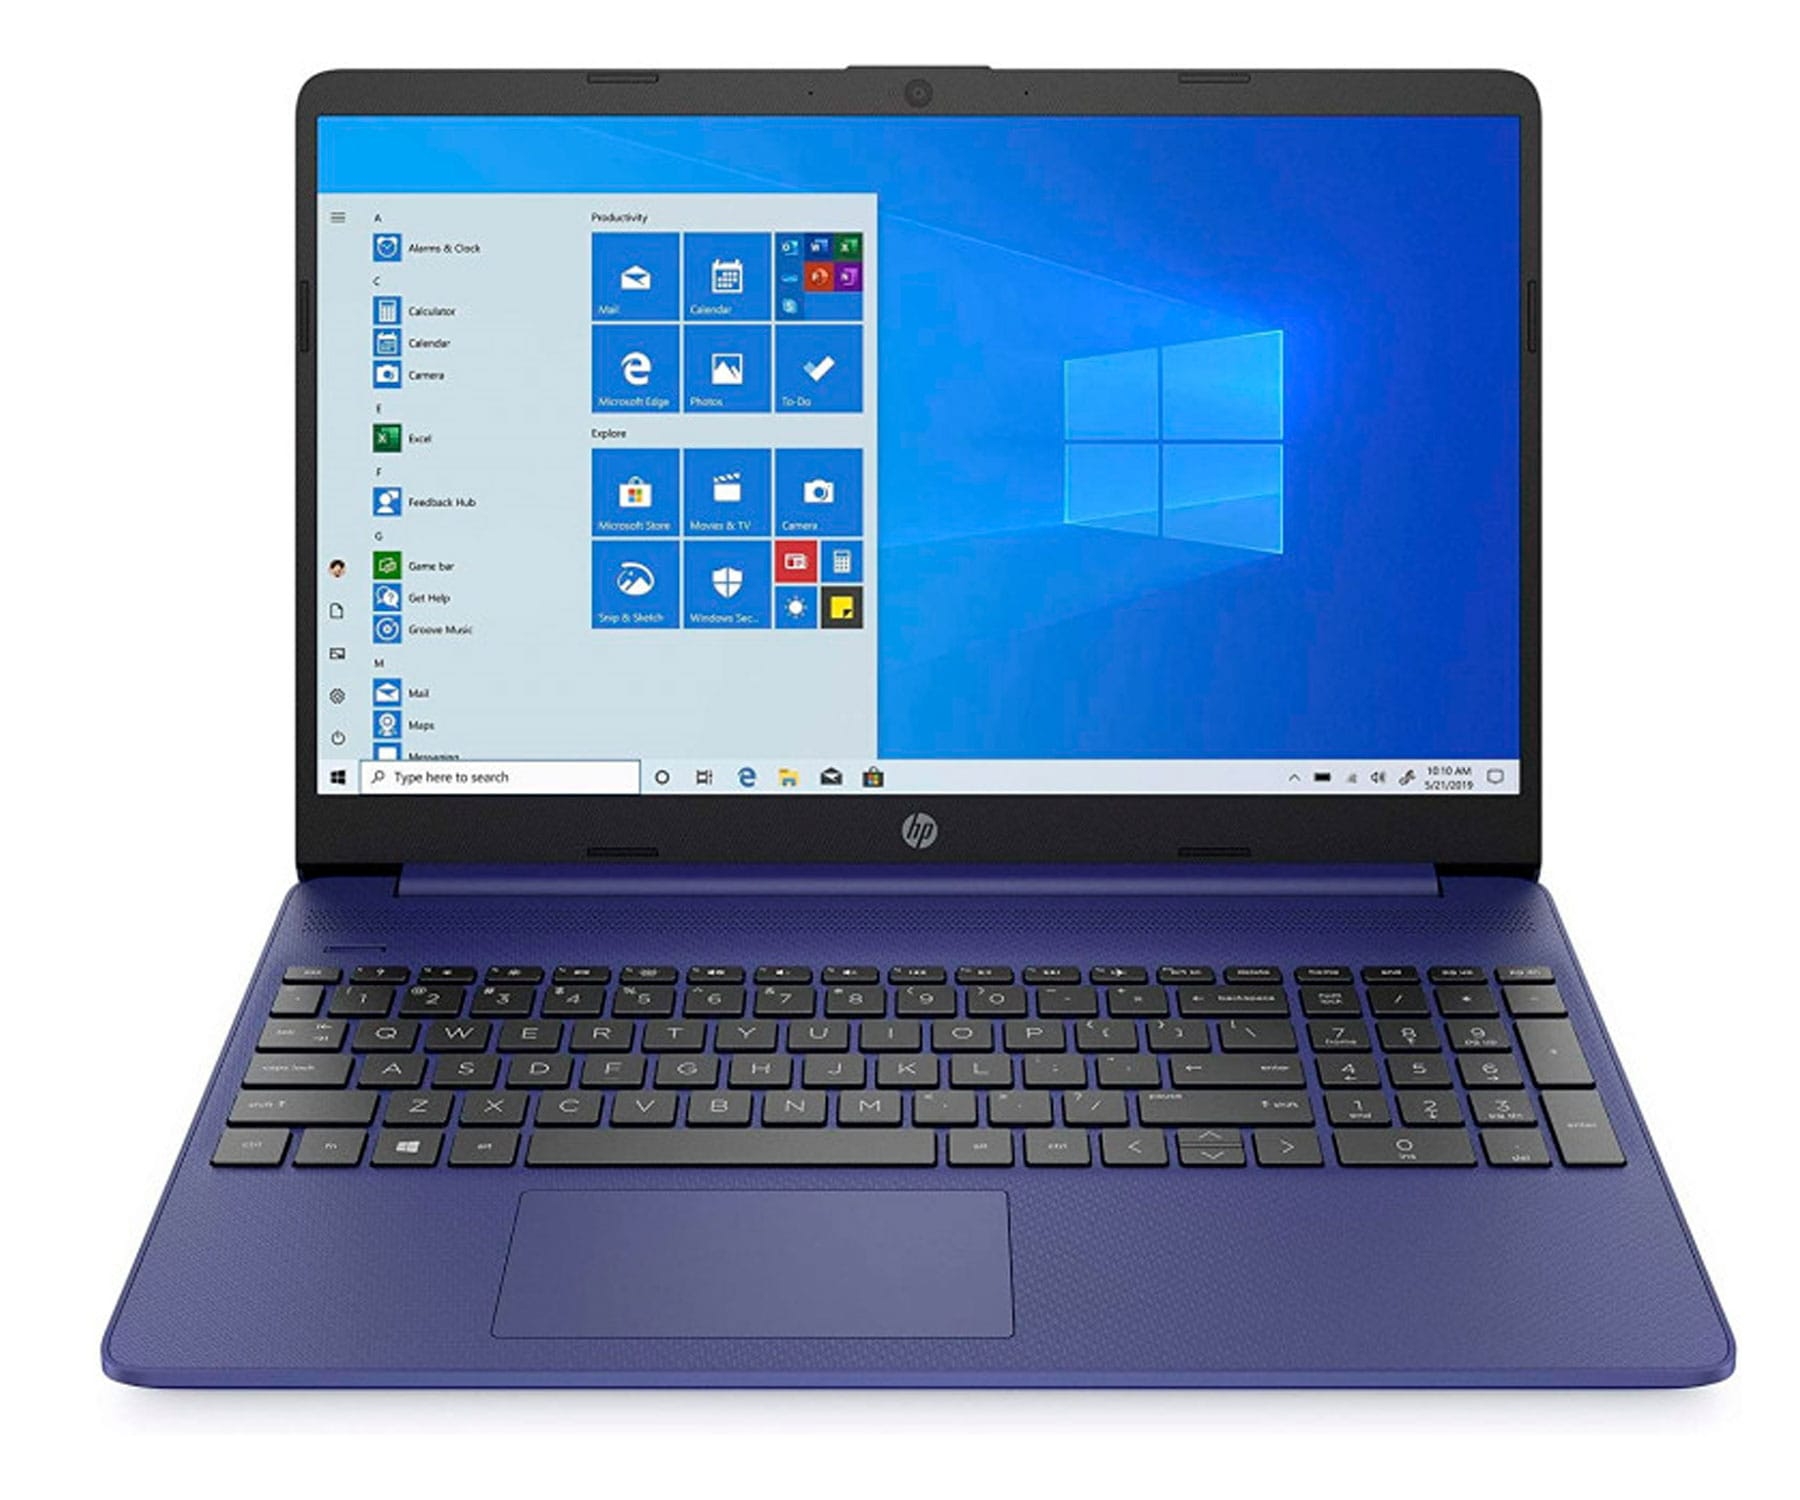 HP LAPTOP 15s-EQ1005NS AZUL INDIGO PORTÁTIL 15.6'' AMD ATHLON SILVER 3050U 512GB SSD 8GB RAM WINDOWS 10 HOME